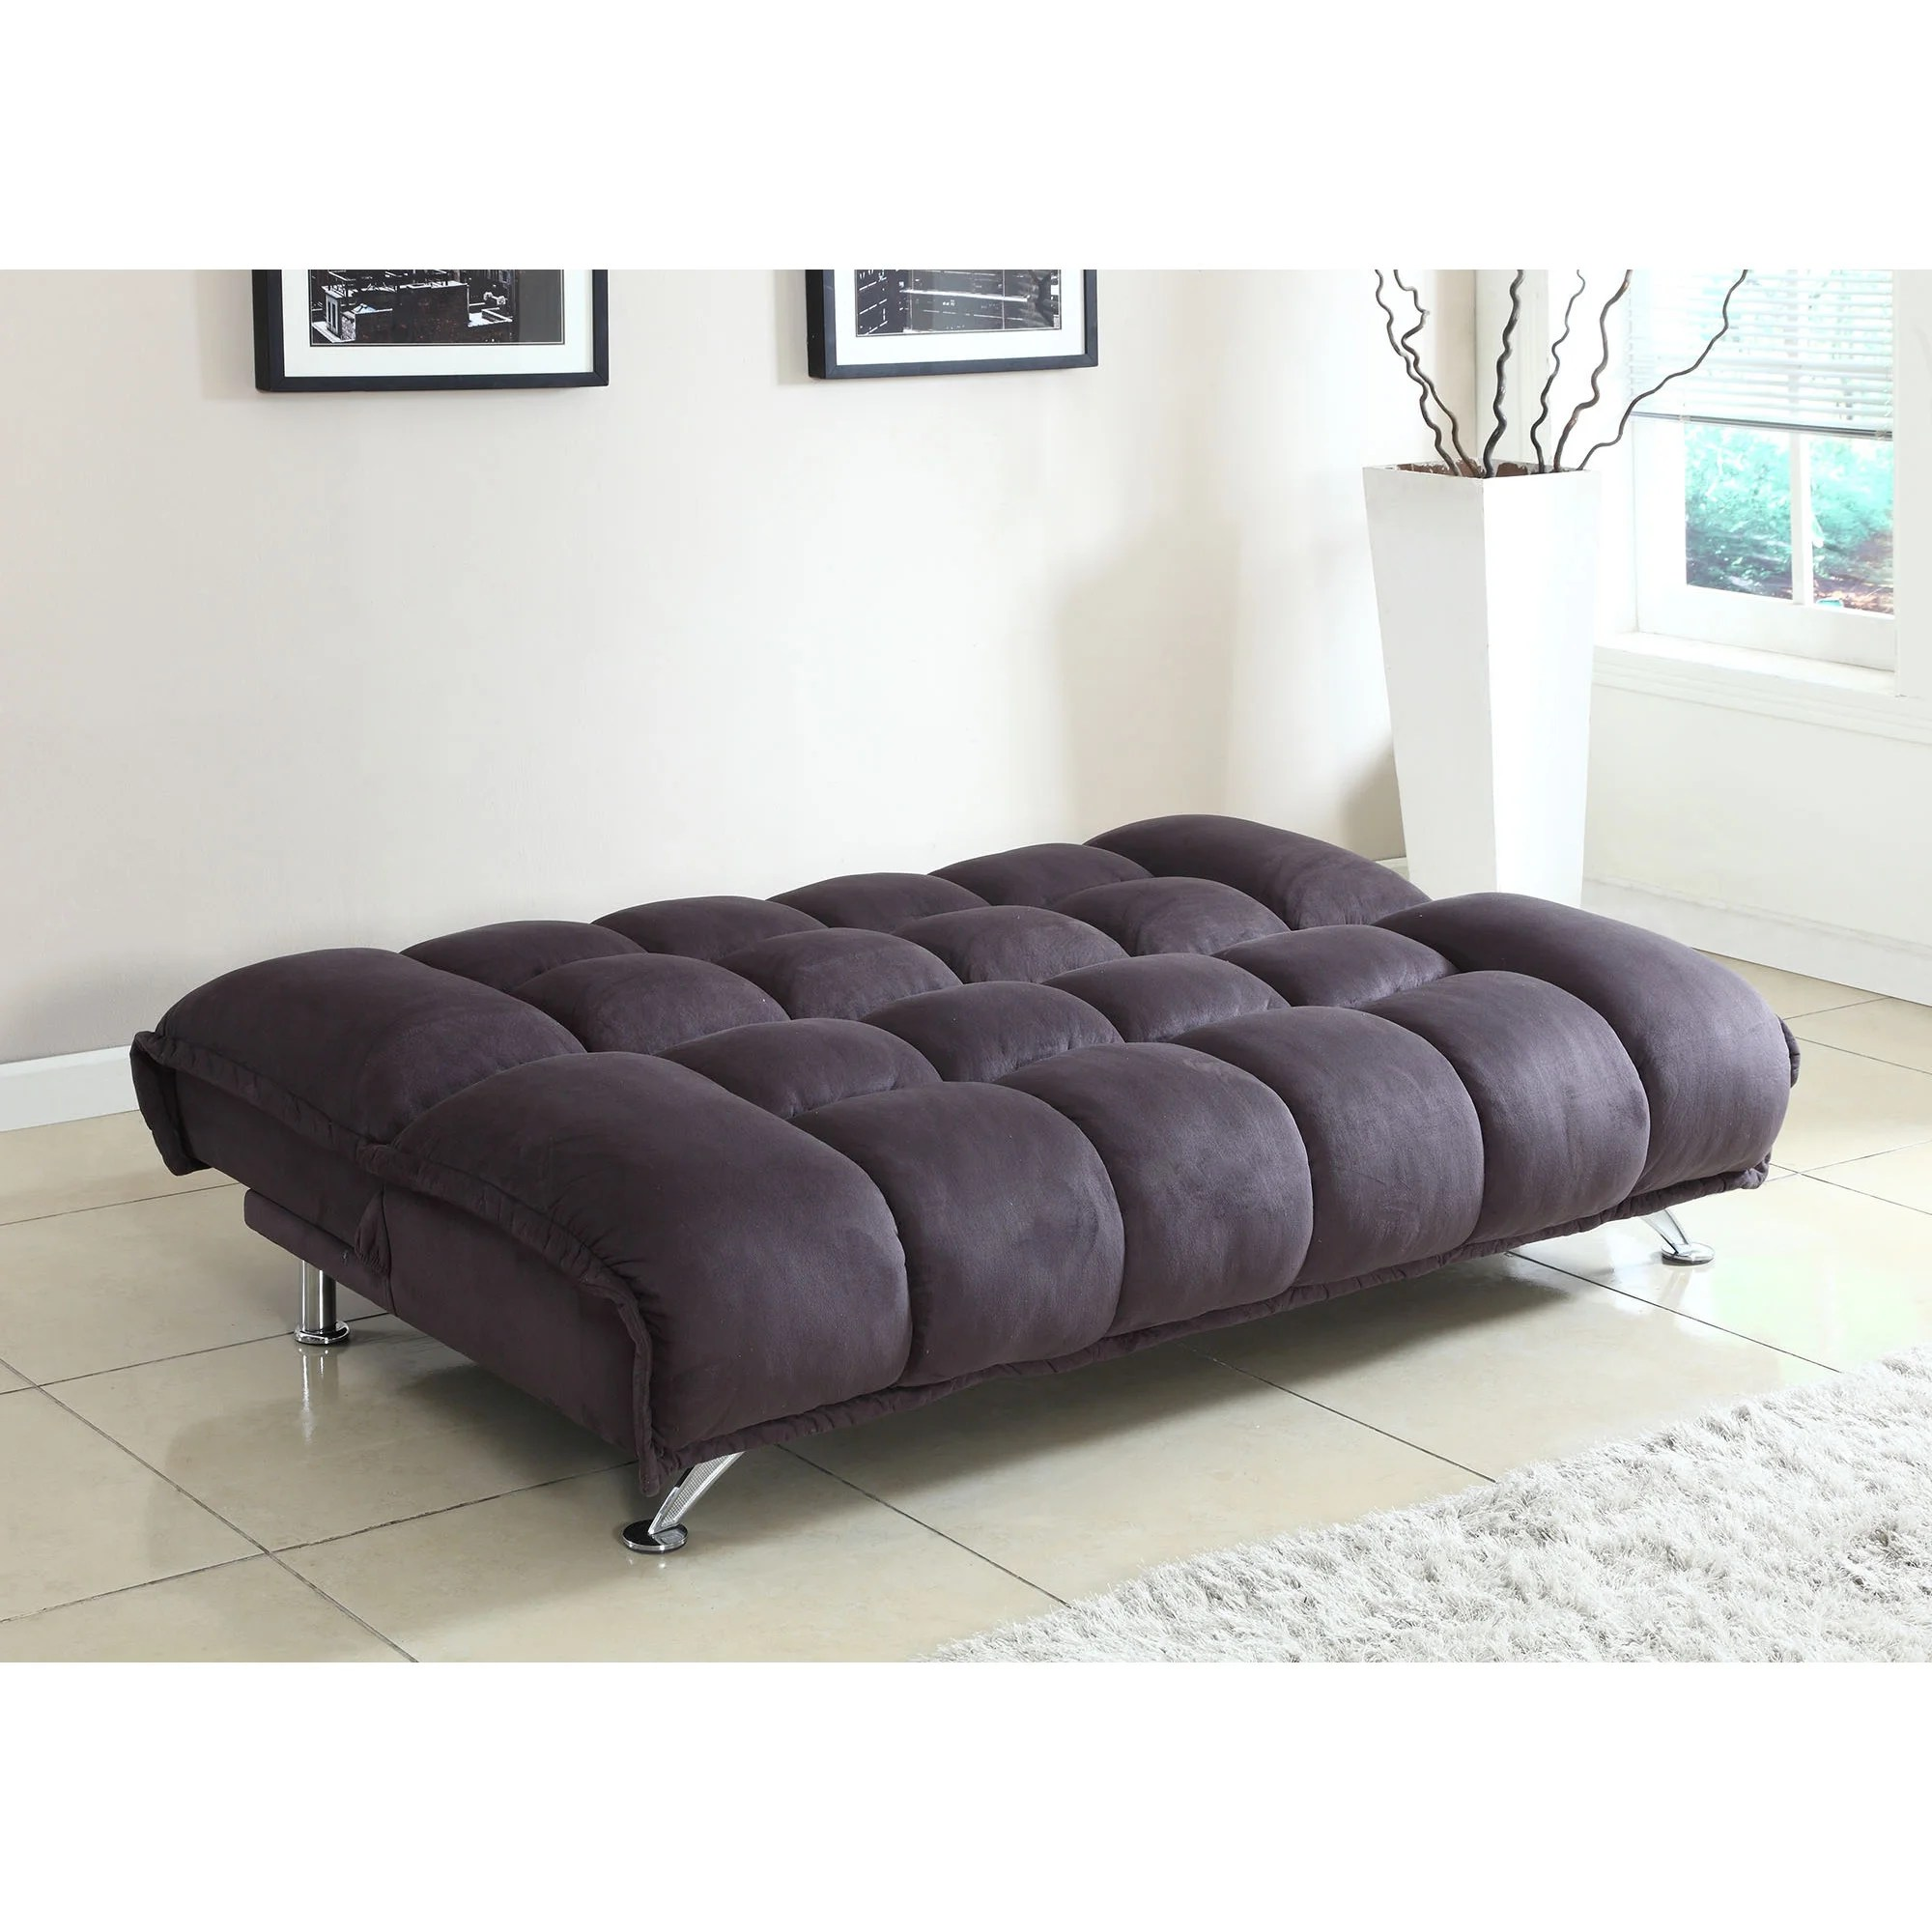 Futon Online Buy Futons Online At Overstock Our Best Living Room